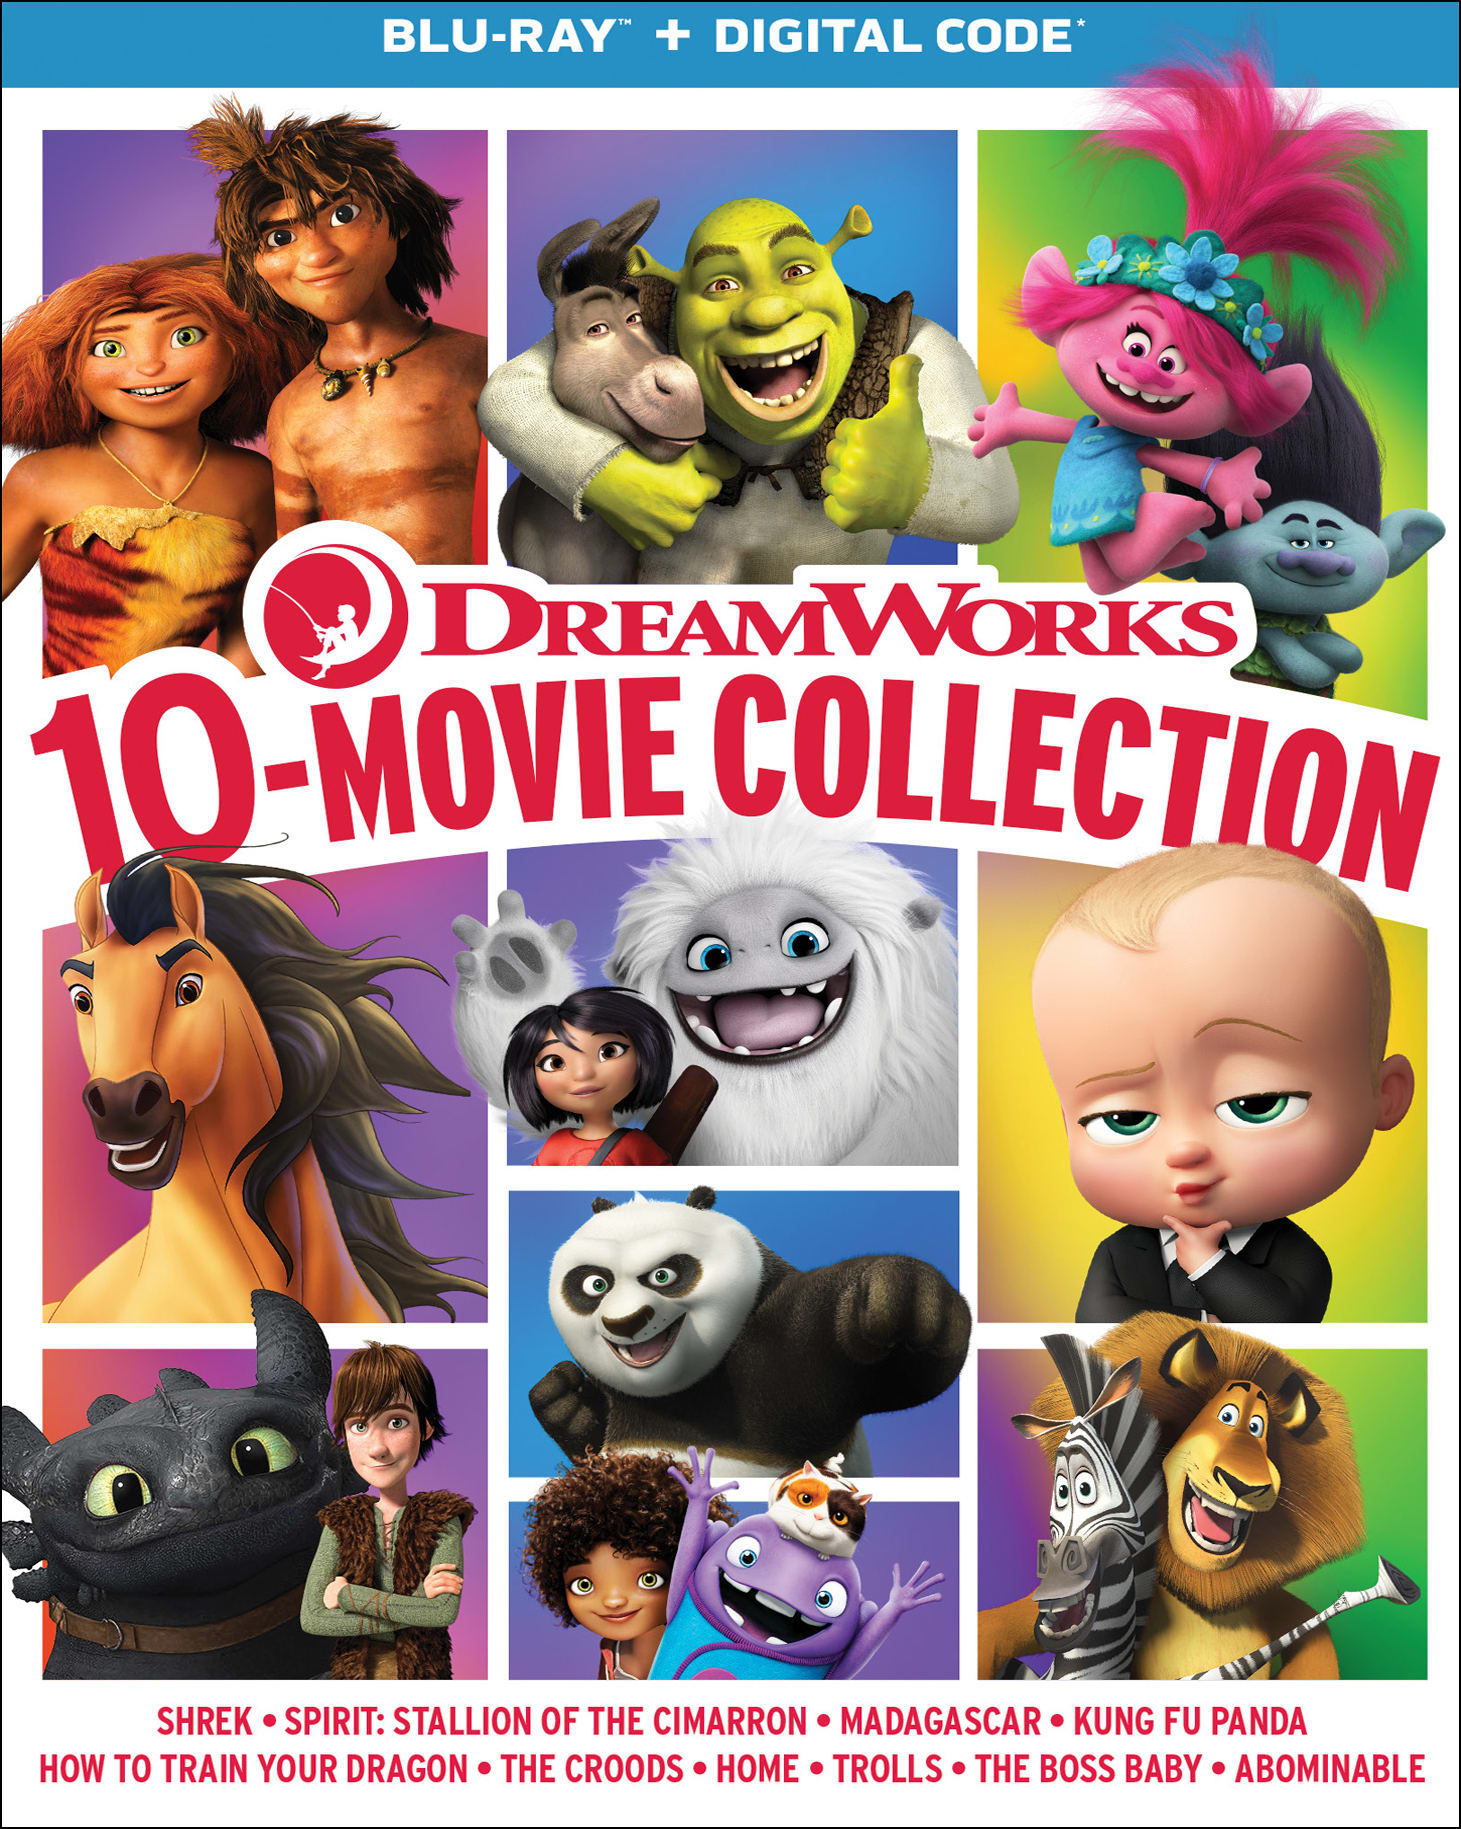 DreamWorks 10-Movie Collection [Blu-ray]